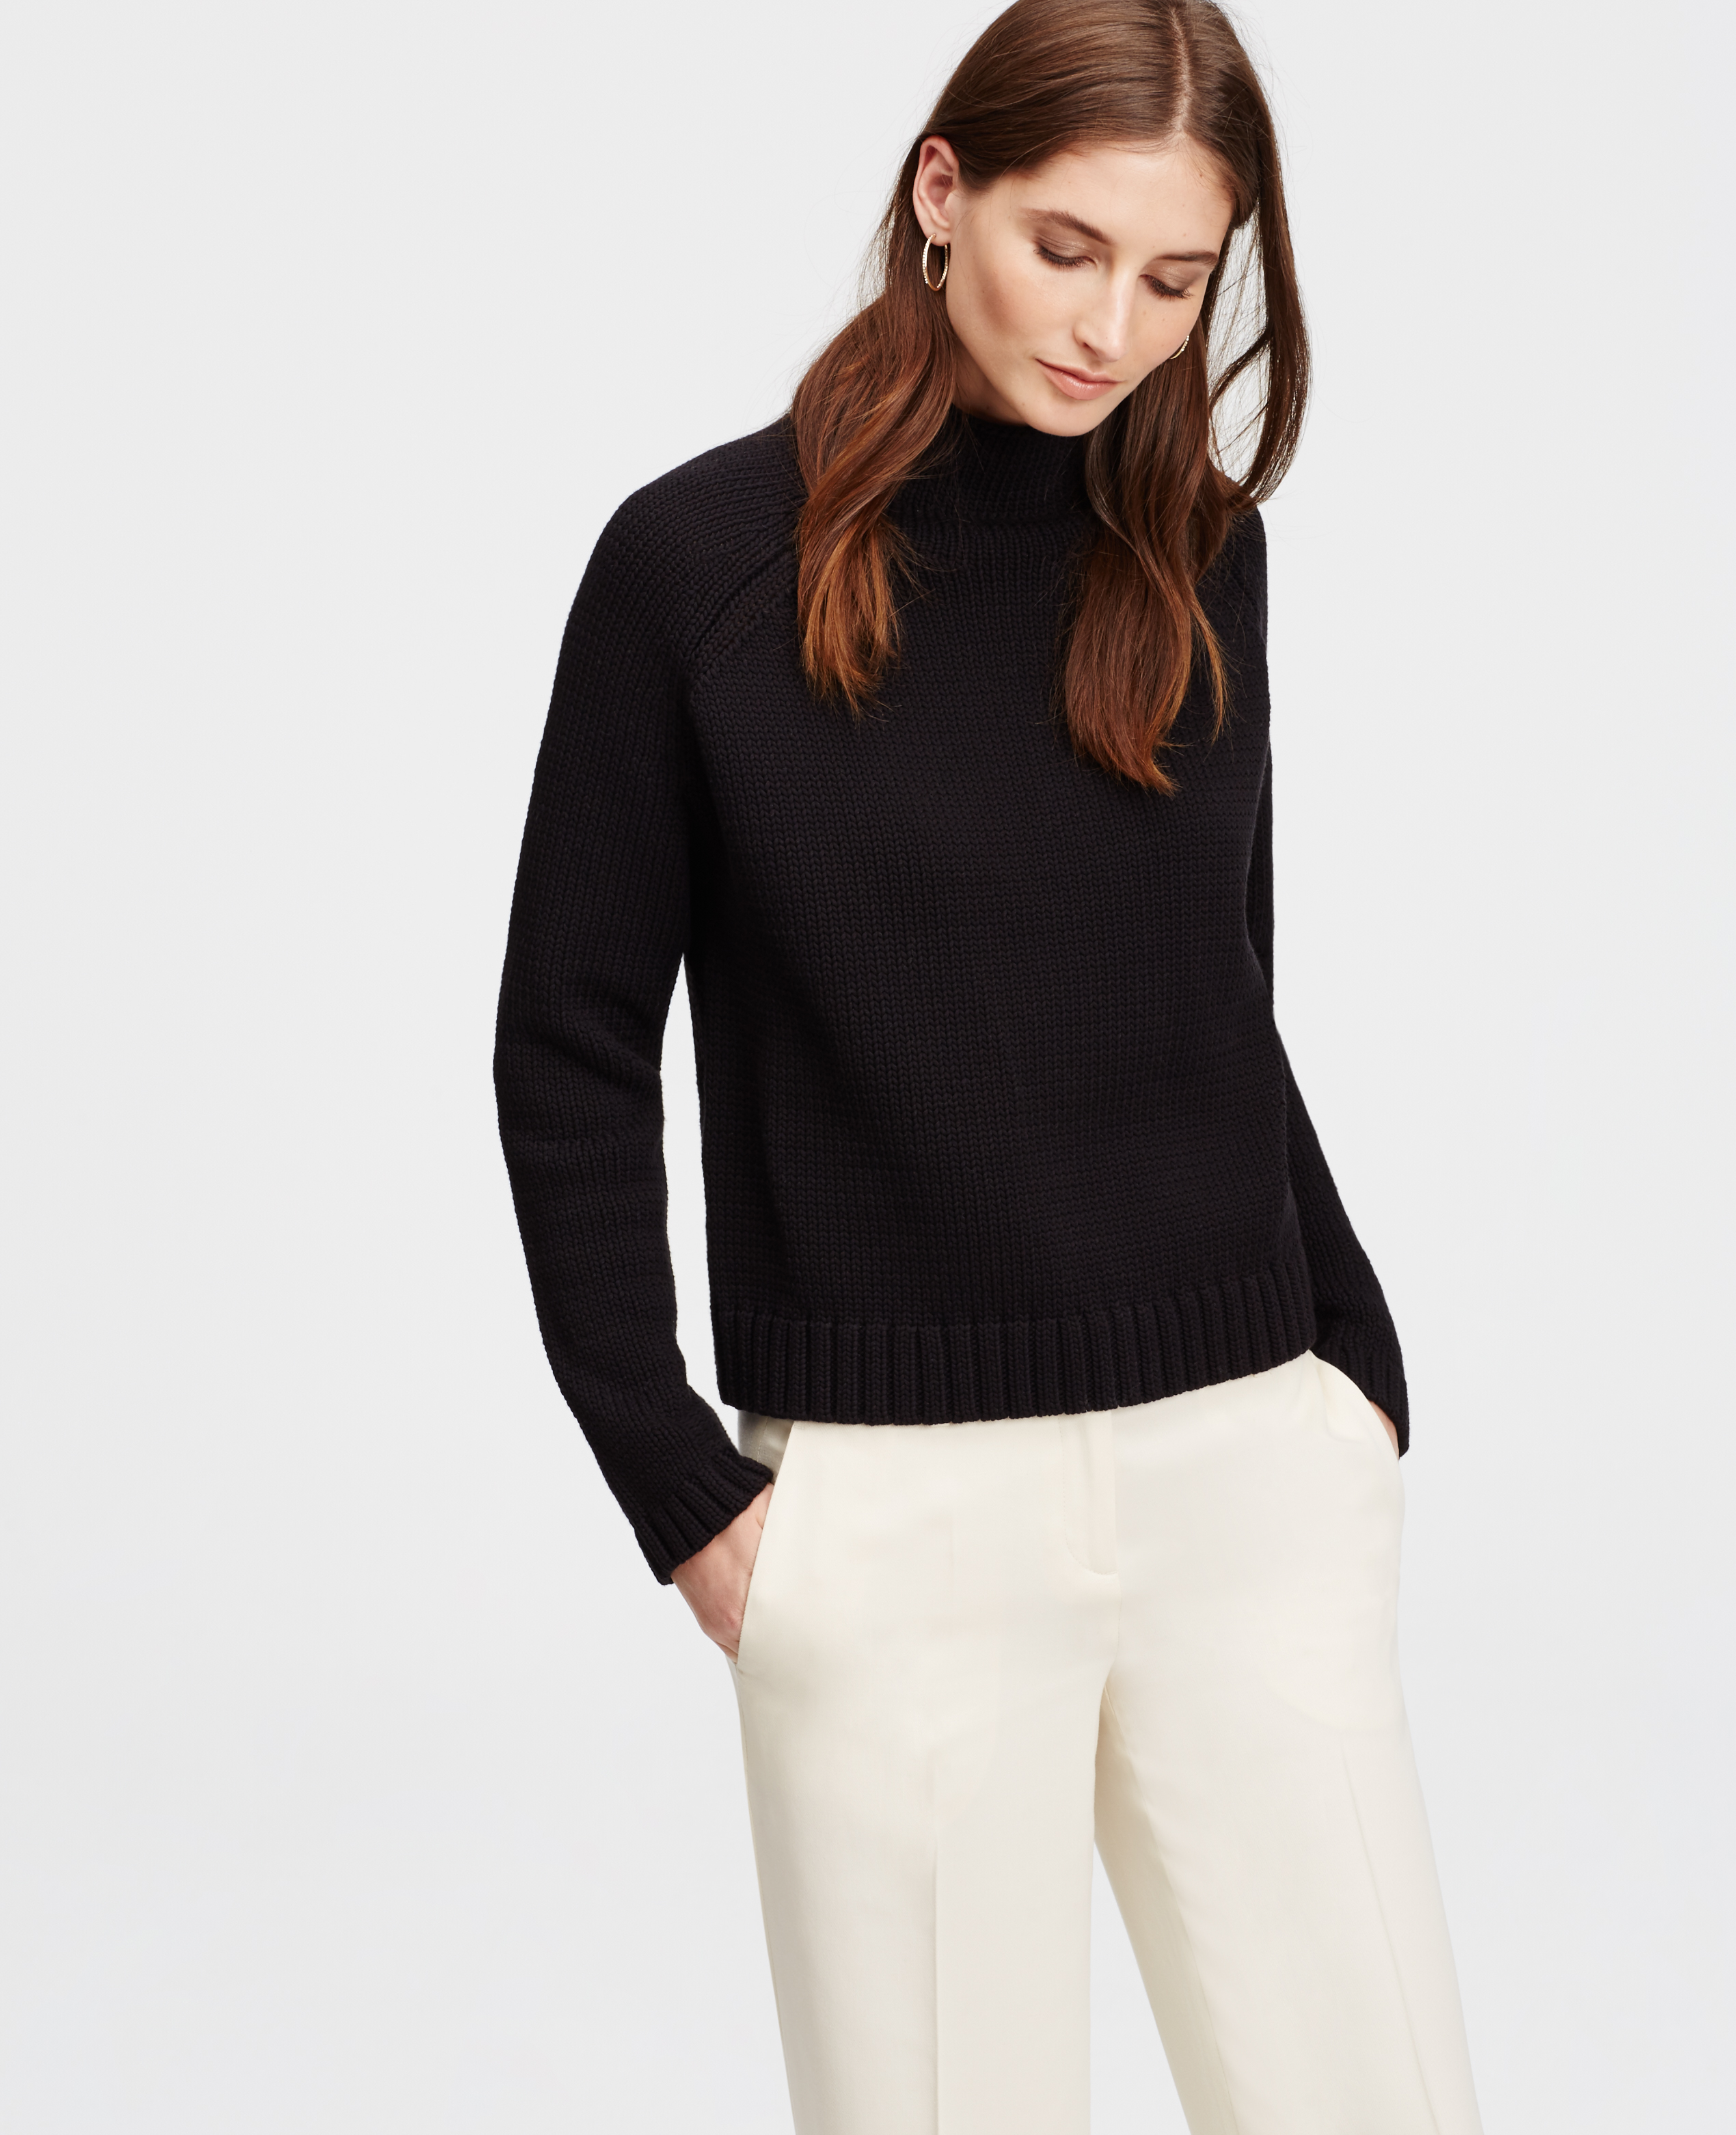 Ann taylor Petite Cropped Turtleneck Sweater in Black | Lyst